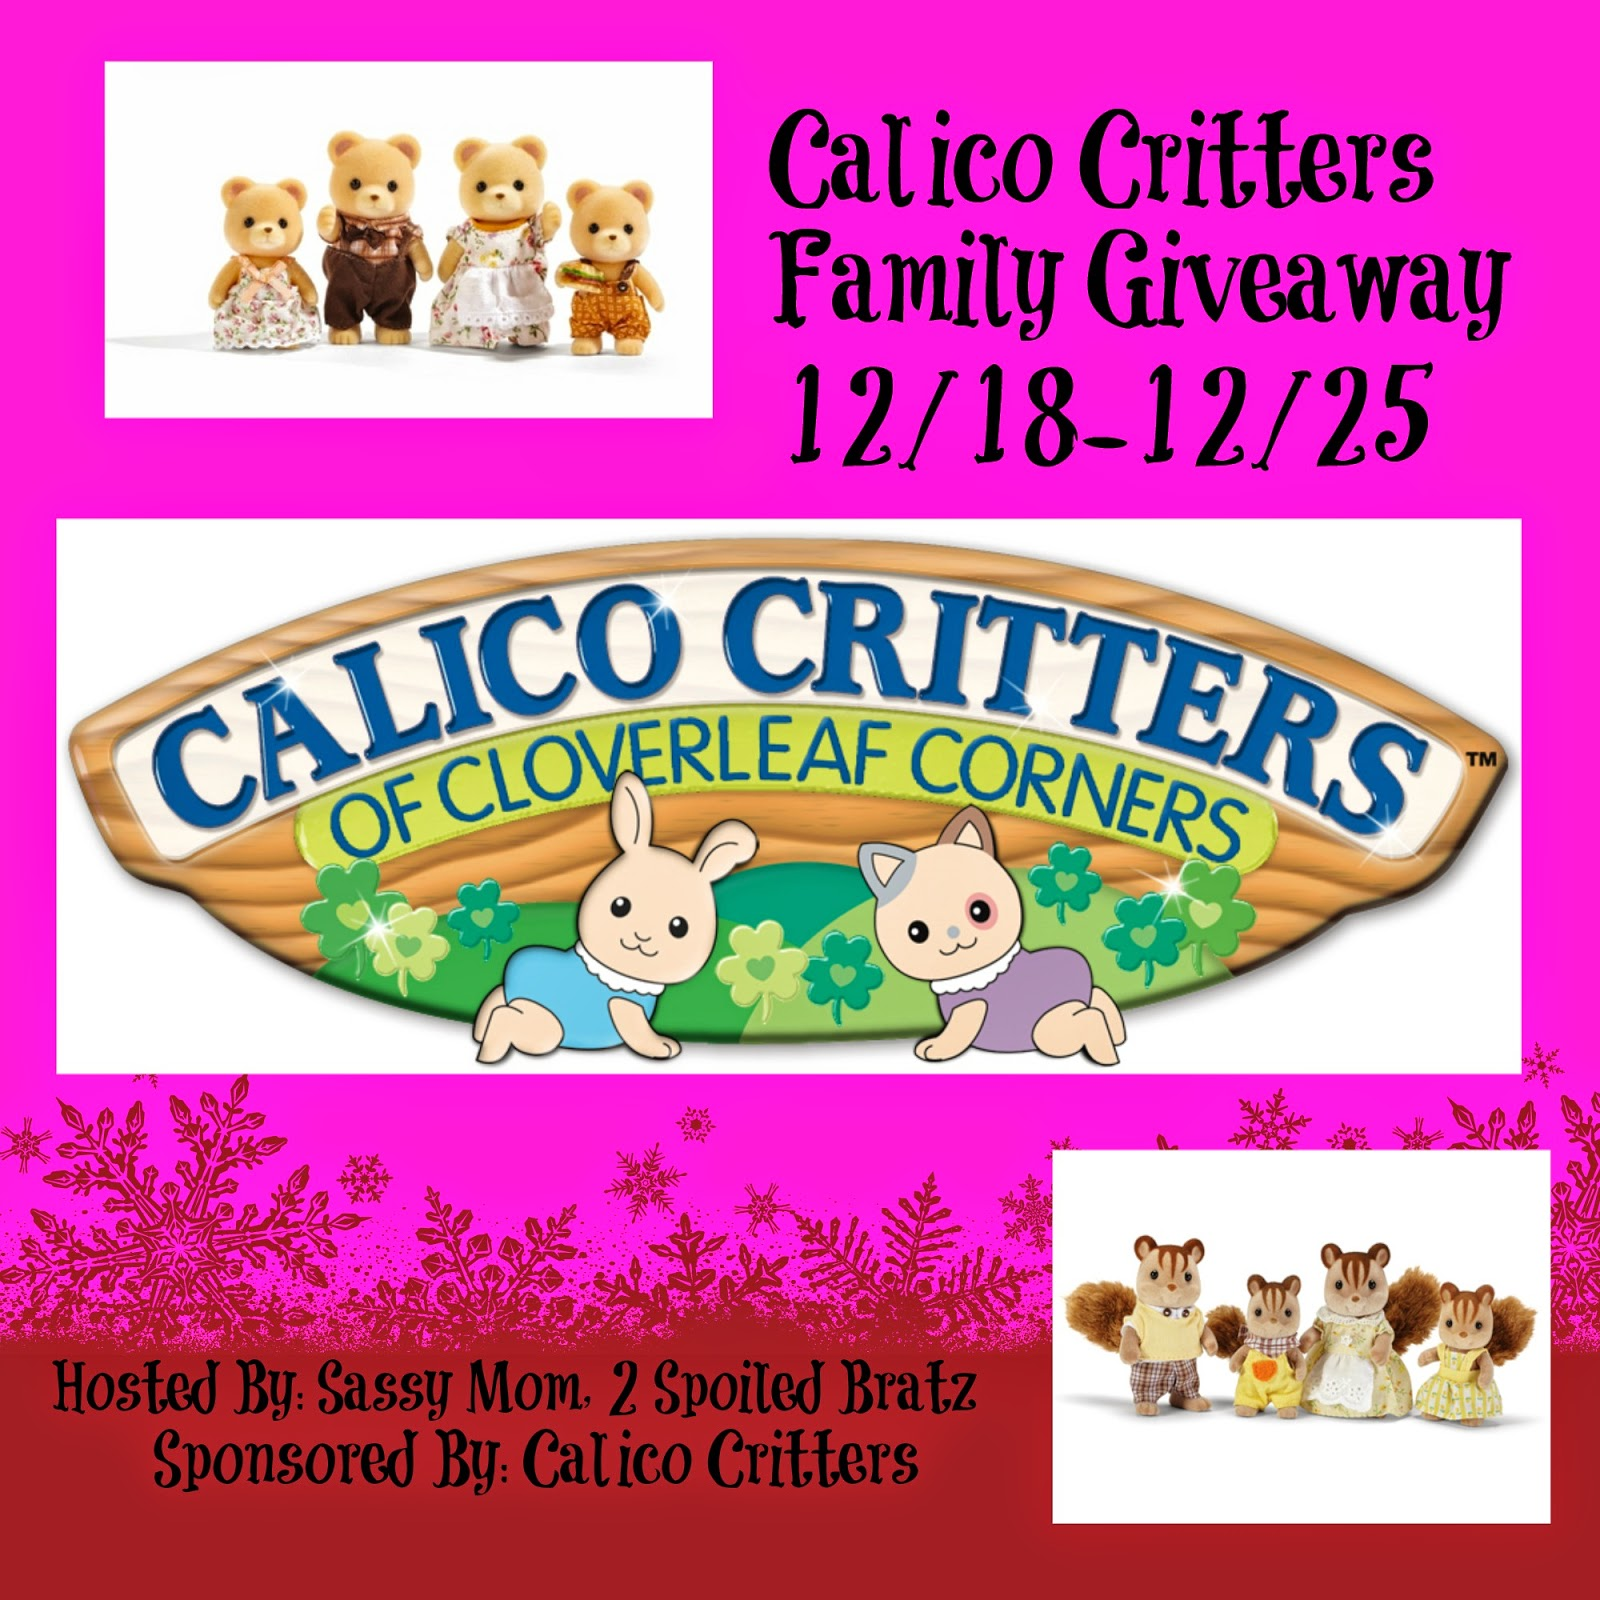 Calico Critters Family Giveaway US Ends 12/25